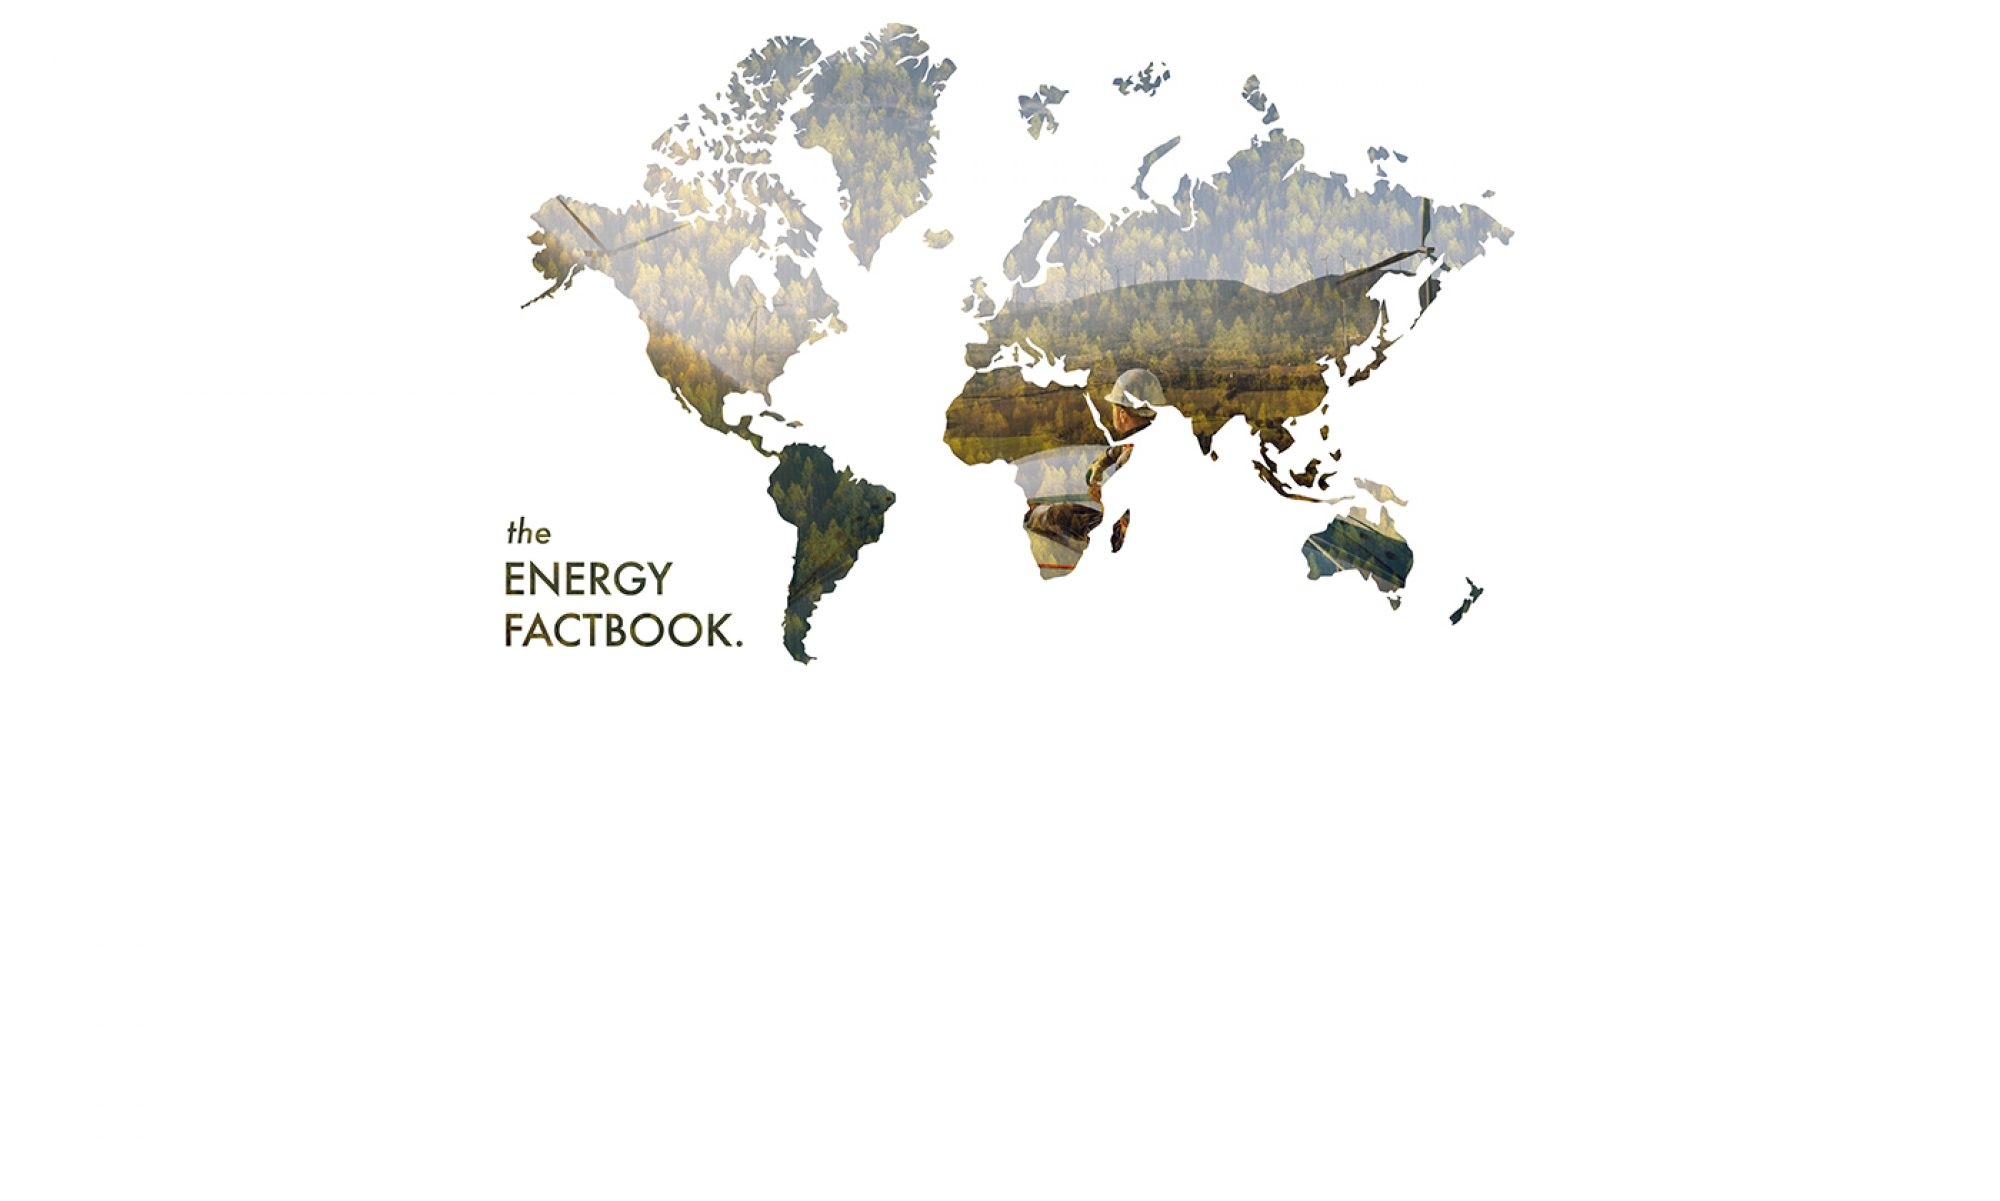 The Energy Factbook.